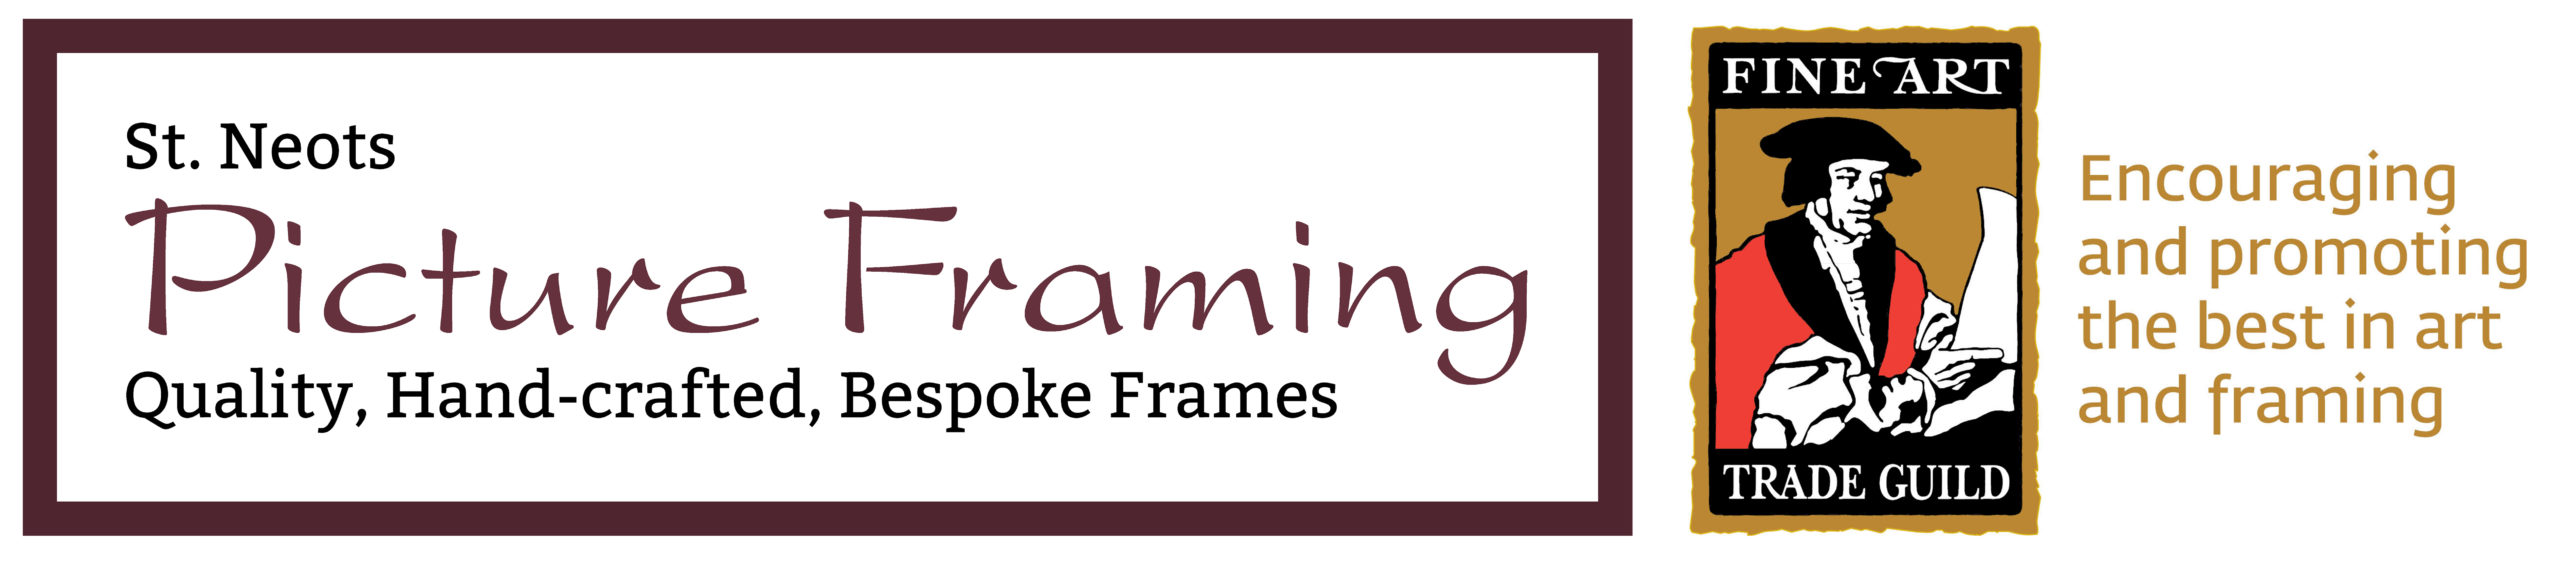 St Neots Picture Framing is a member of the Fine Art Trade Guild